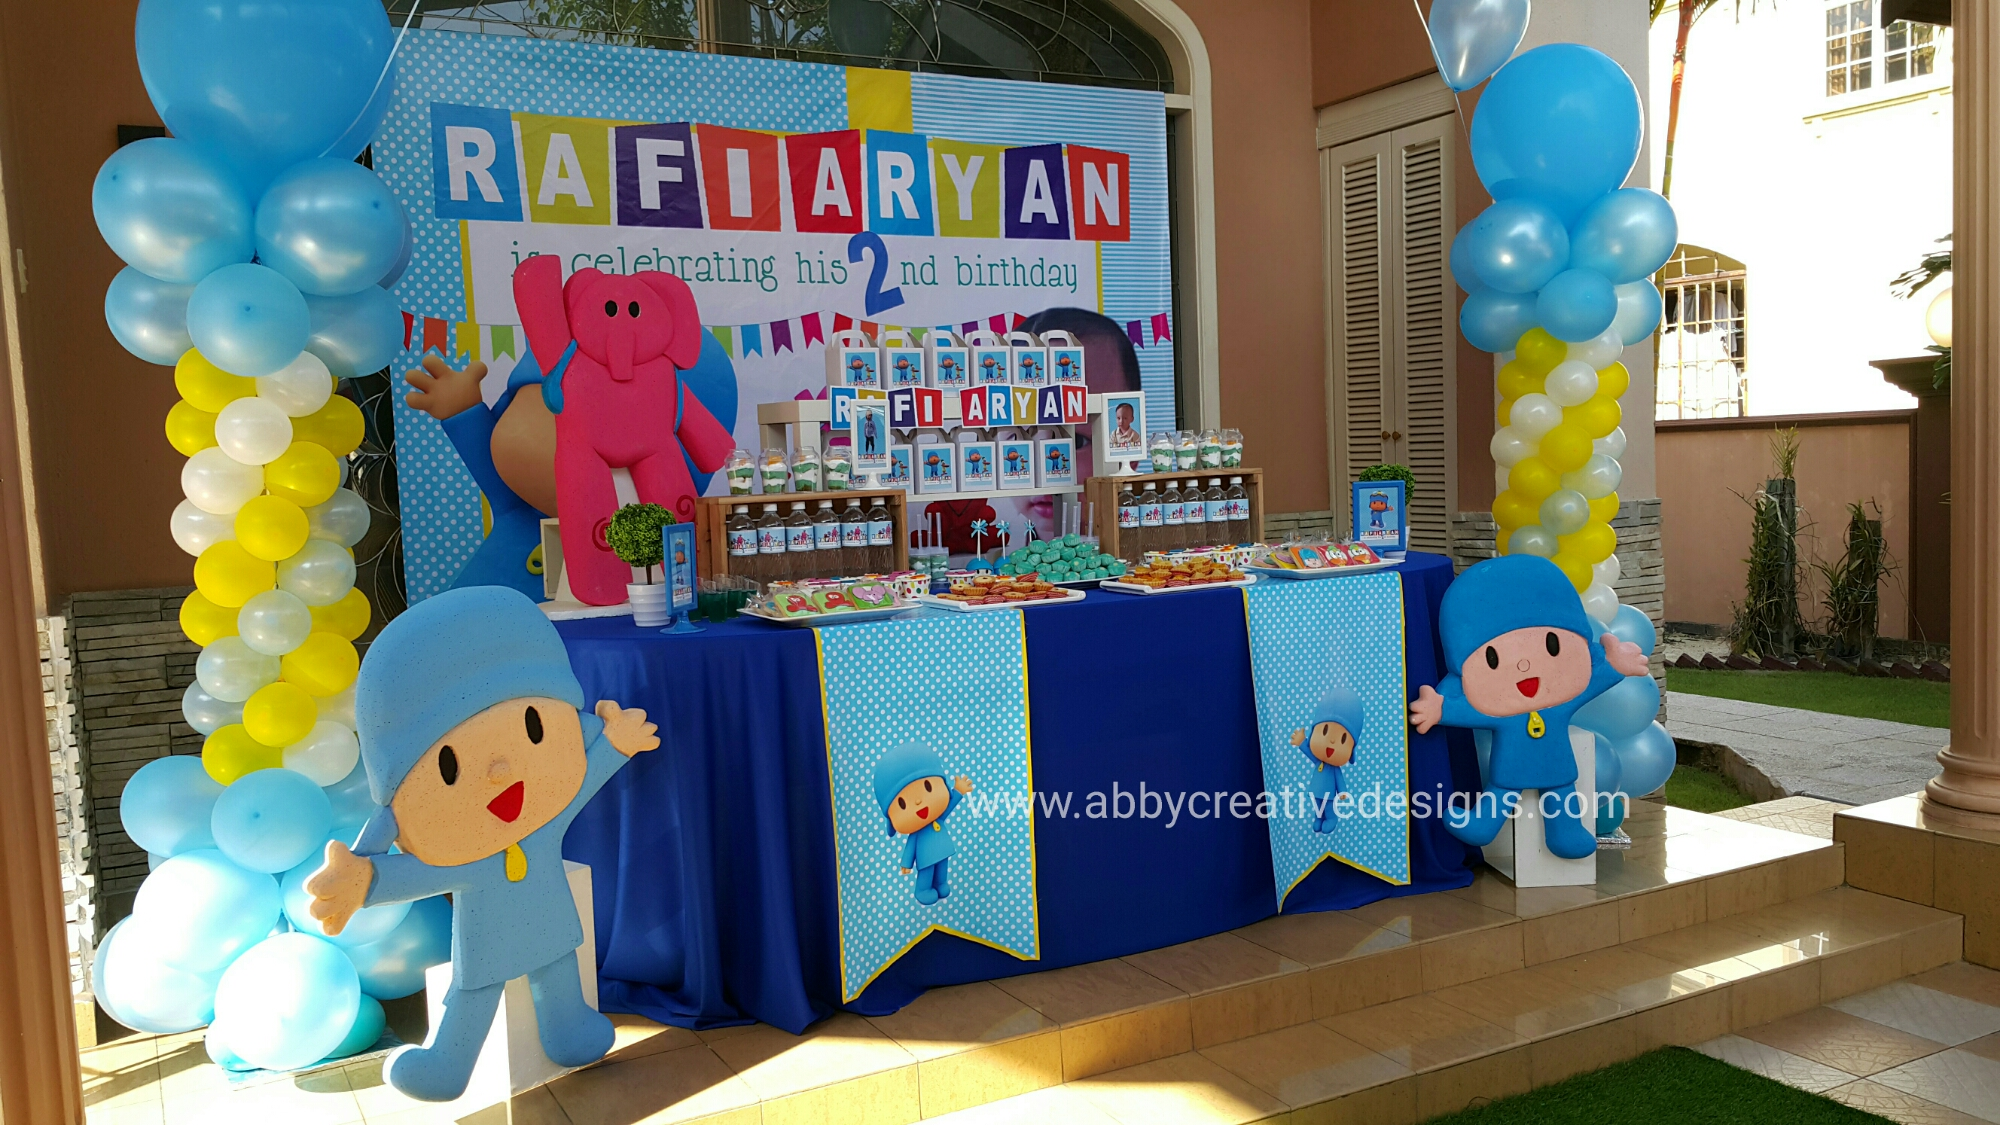 Theme nautical baby shower abby creative designs by for Decoracion de frutas para fiestas infantiles